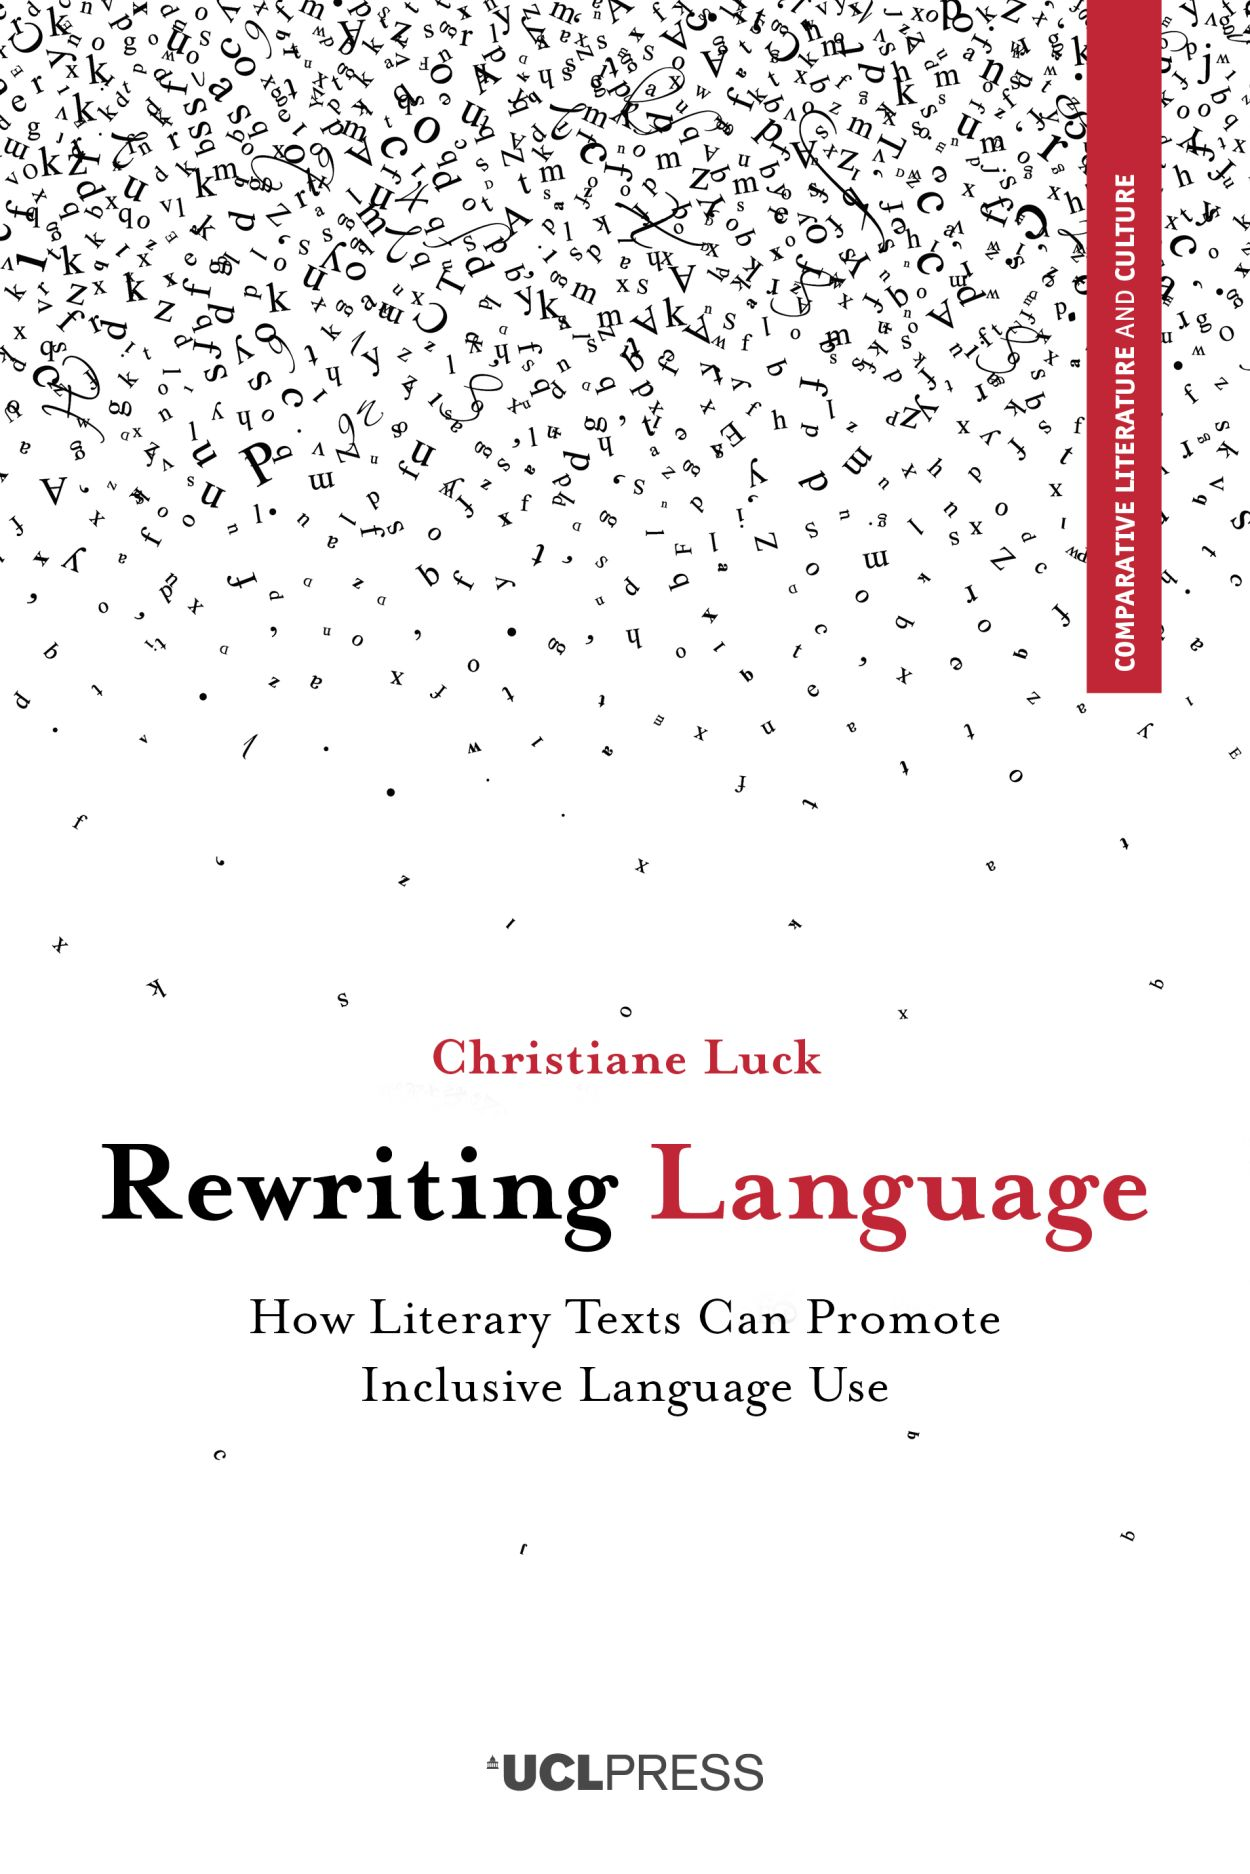 Rewriting Language: How Literary Texts Can Promote Inclusive Language Use